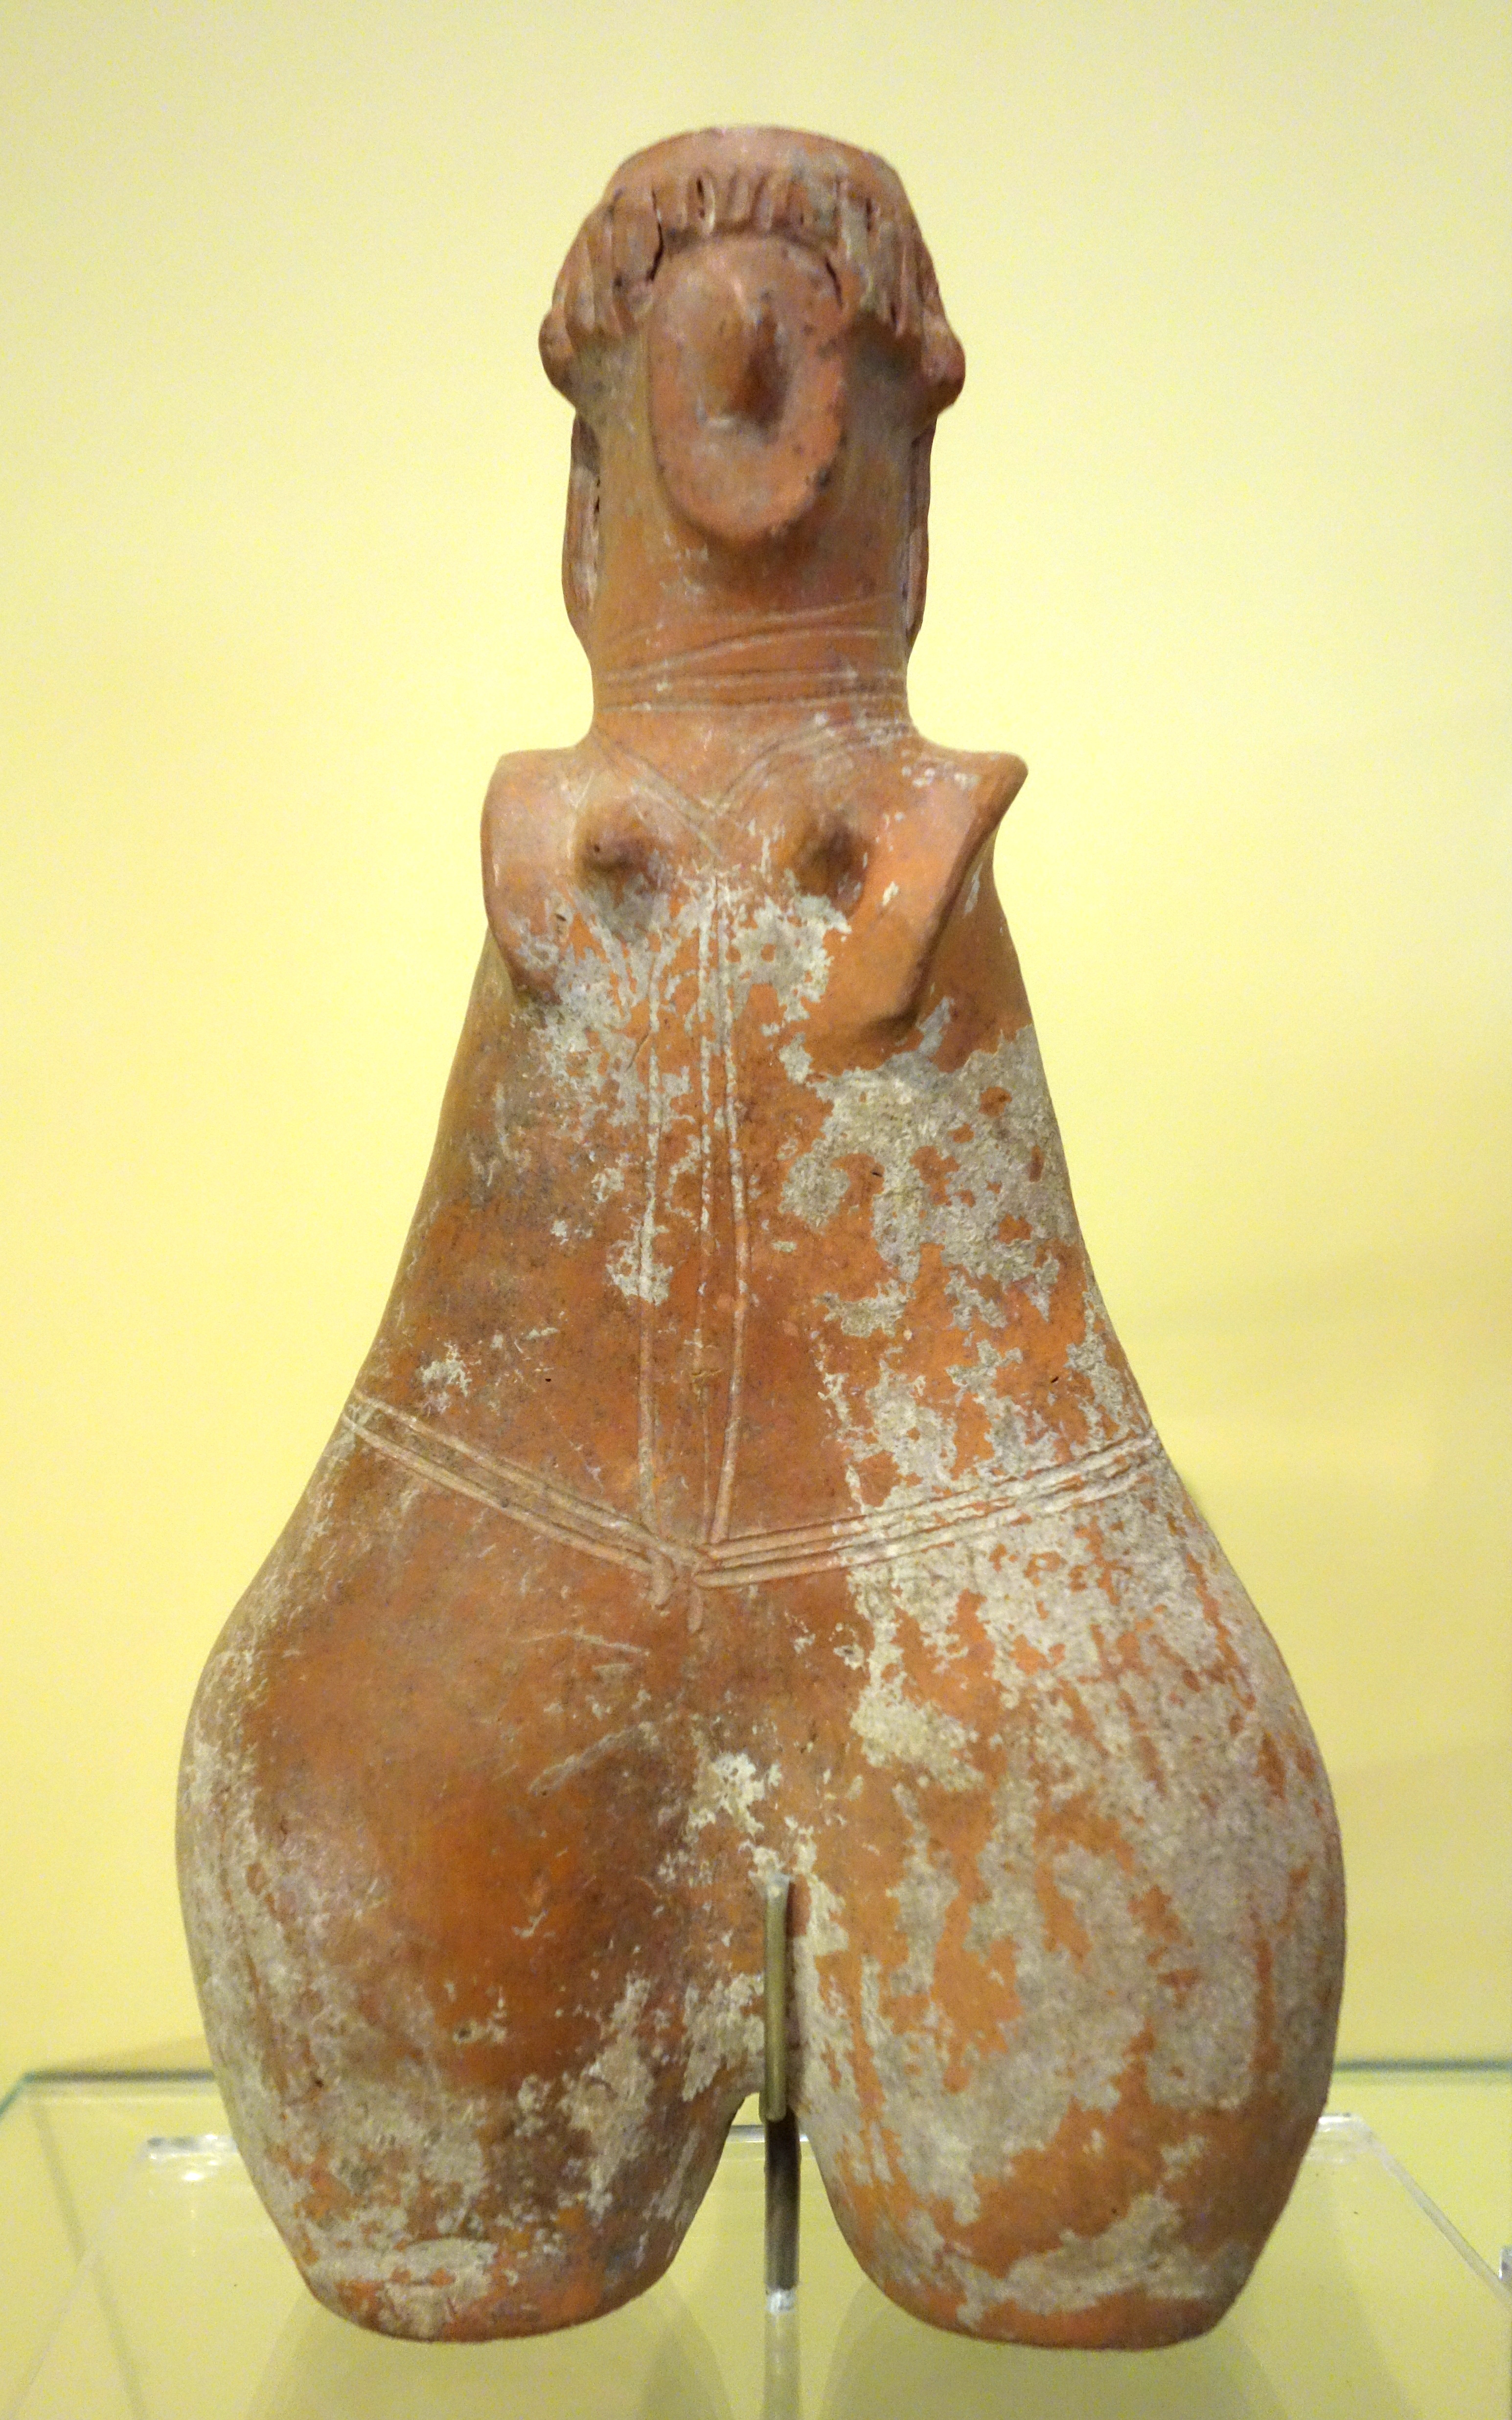 Amlash-style mother goddess, 1 of 5, perhaps Amlash, Northern Iran, Iron Age, c. 1200-900 BC, earthenware - Royal Ontario Museum - DSC04531.JPG